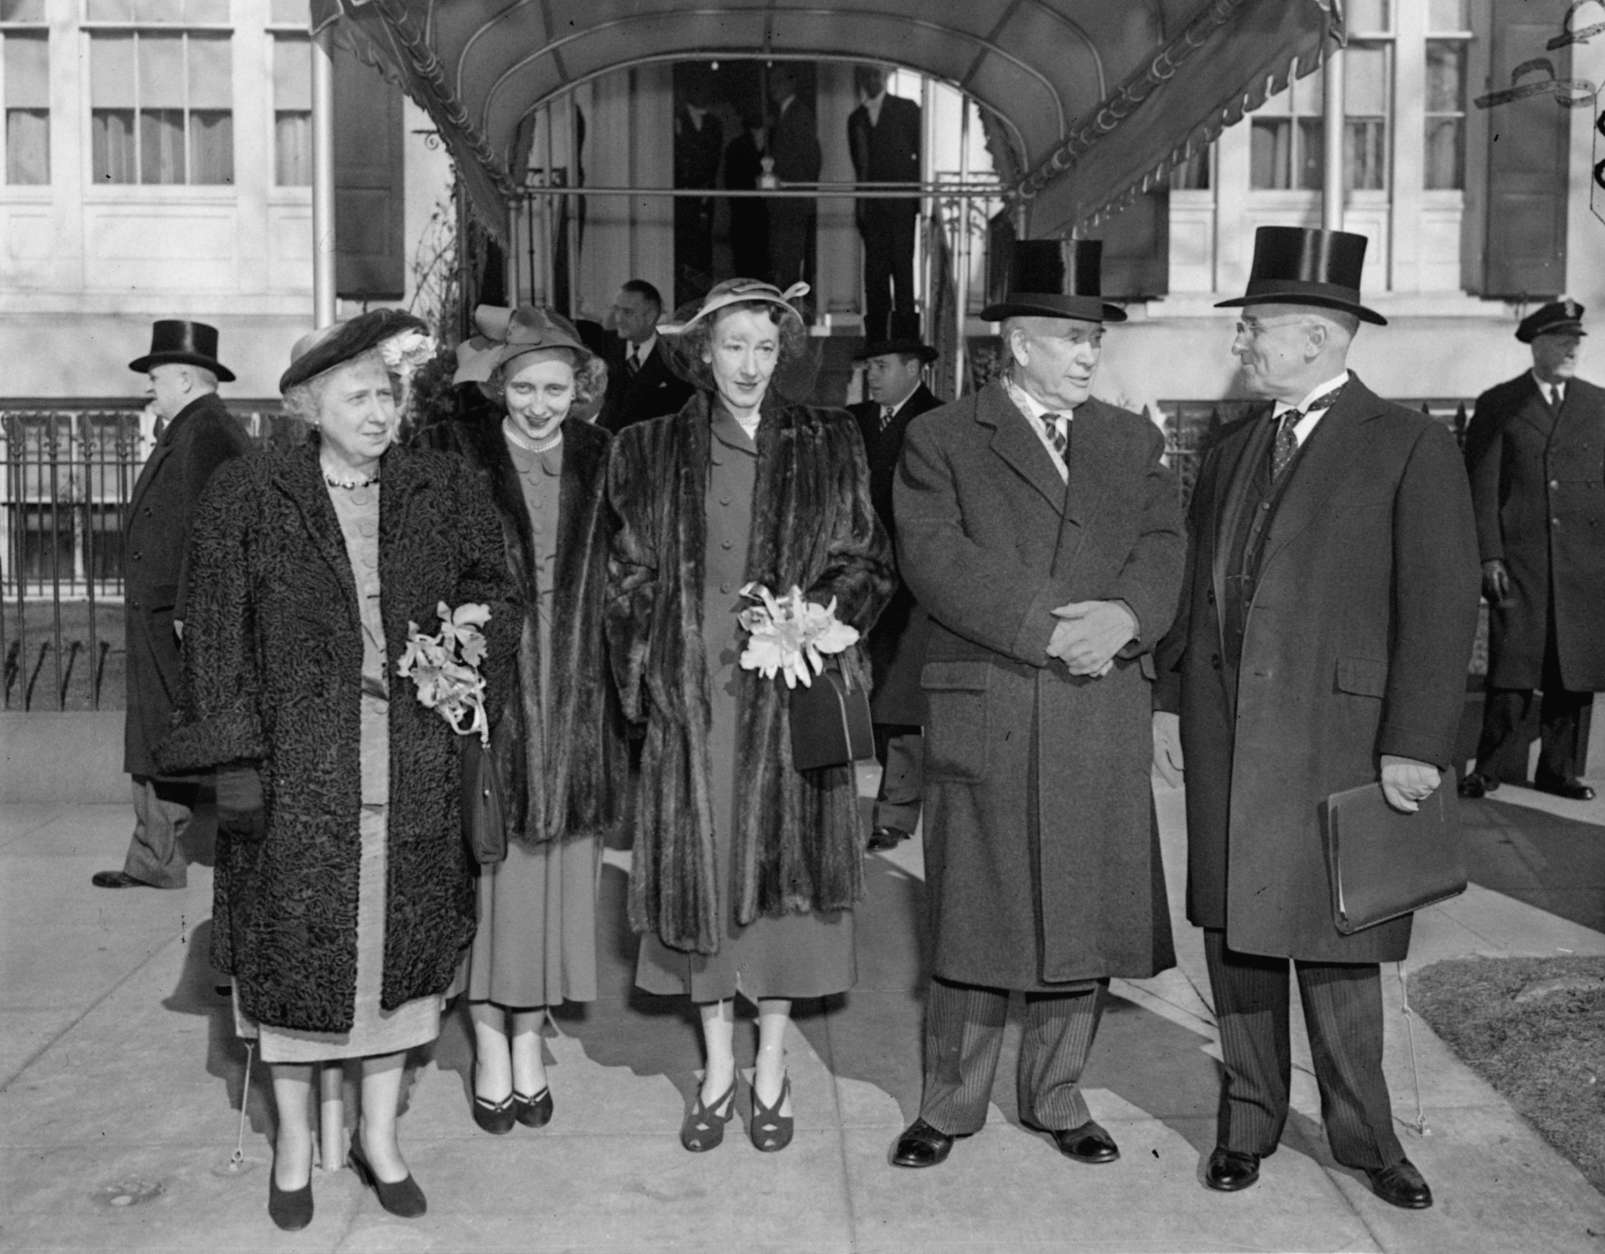 Leaving Blair House for inauguration oath-taking at the Capitol, January 20, 1949, are left to right:  Mrs. Truman; Margaret, daughter of the President; Mrs. Max Truitt, daughter of Vice-President Barkley; Vice-President Alben Barkley, and President Truman. (AP Photo/stf)